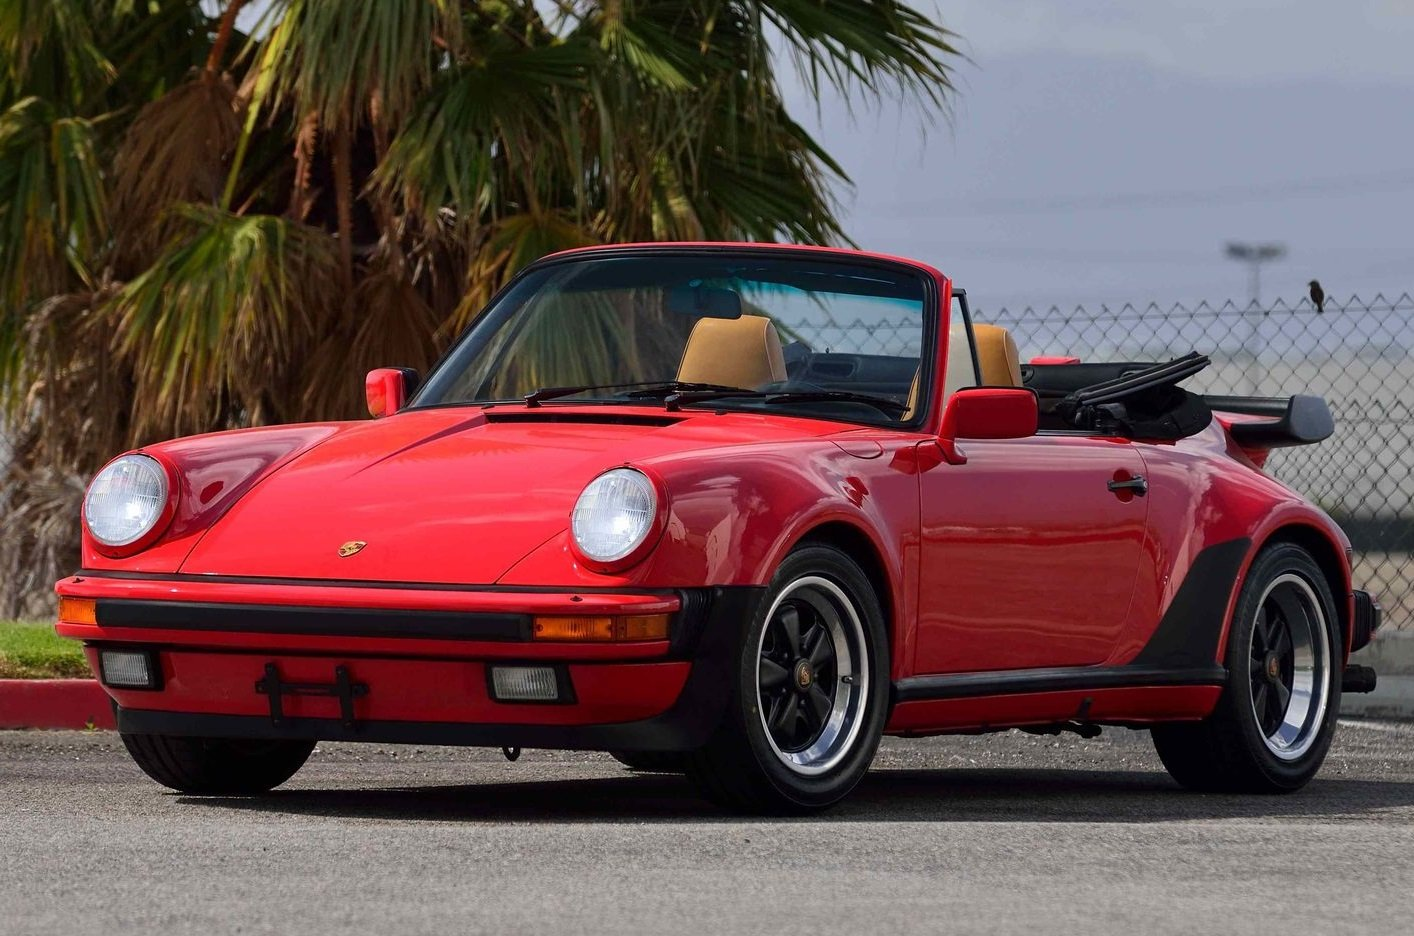 photo 11 turbo cabriolet